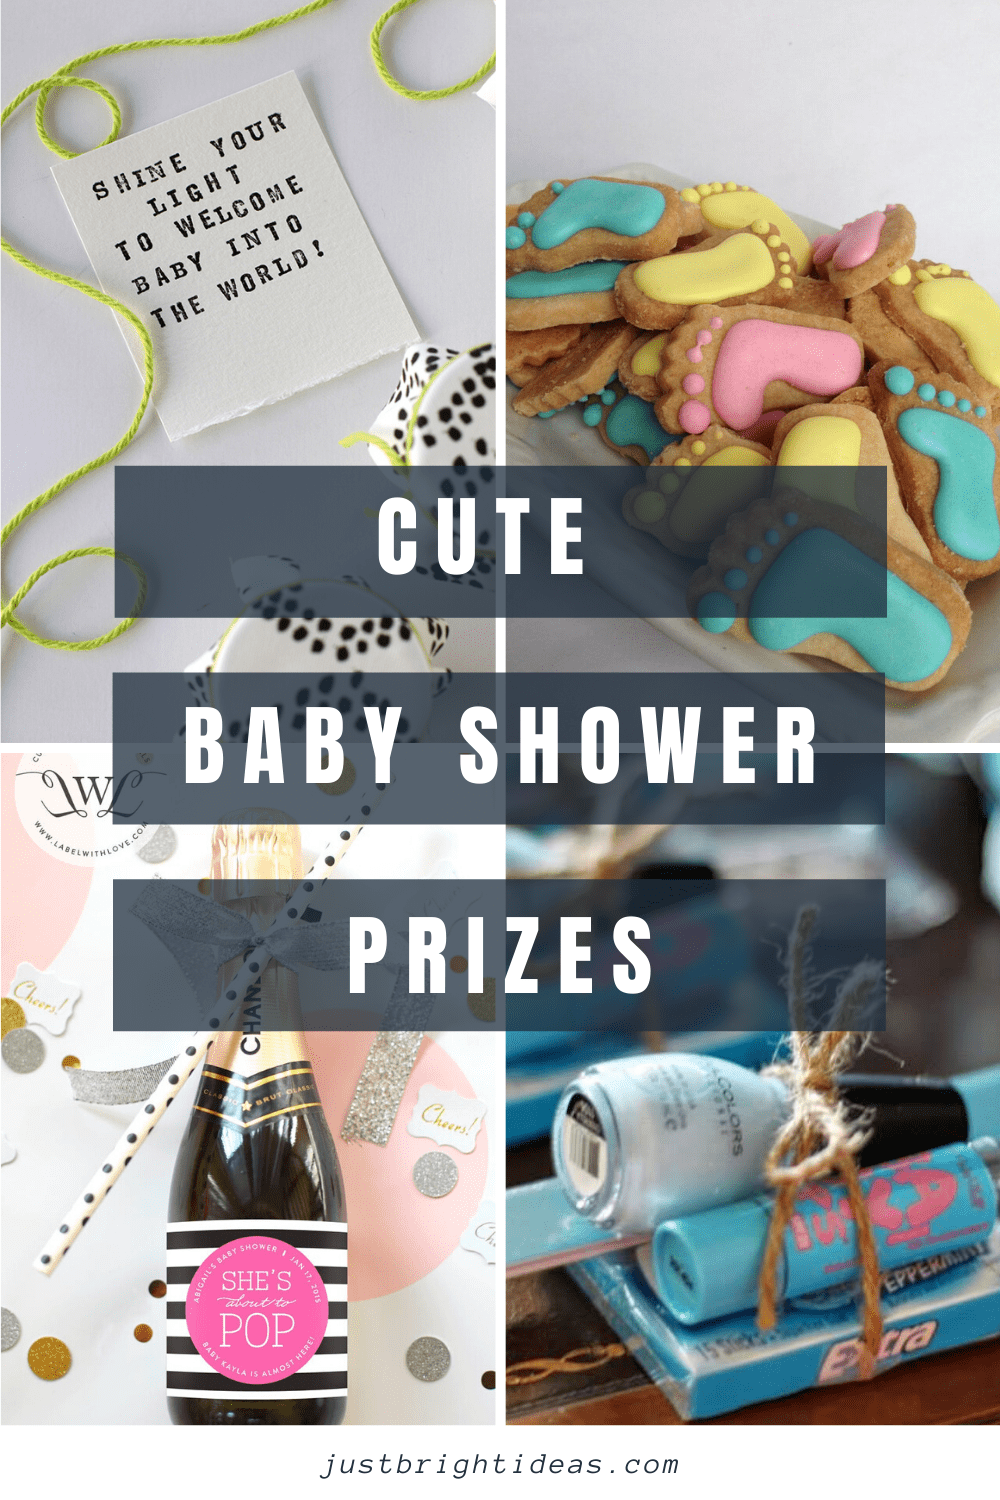 10 Adorable Baby Shower Prizes Your Guests Won't Just Toss in the Trash!